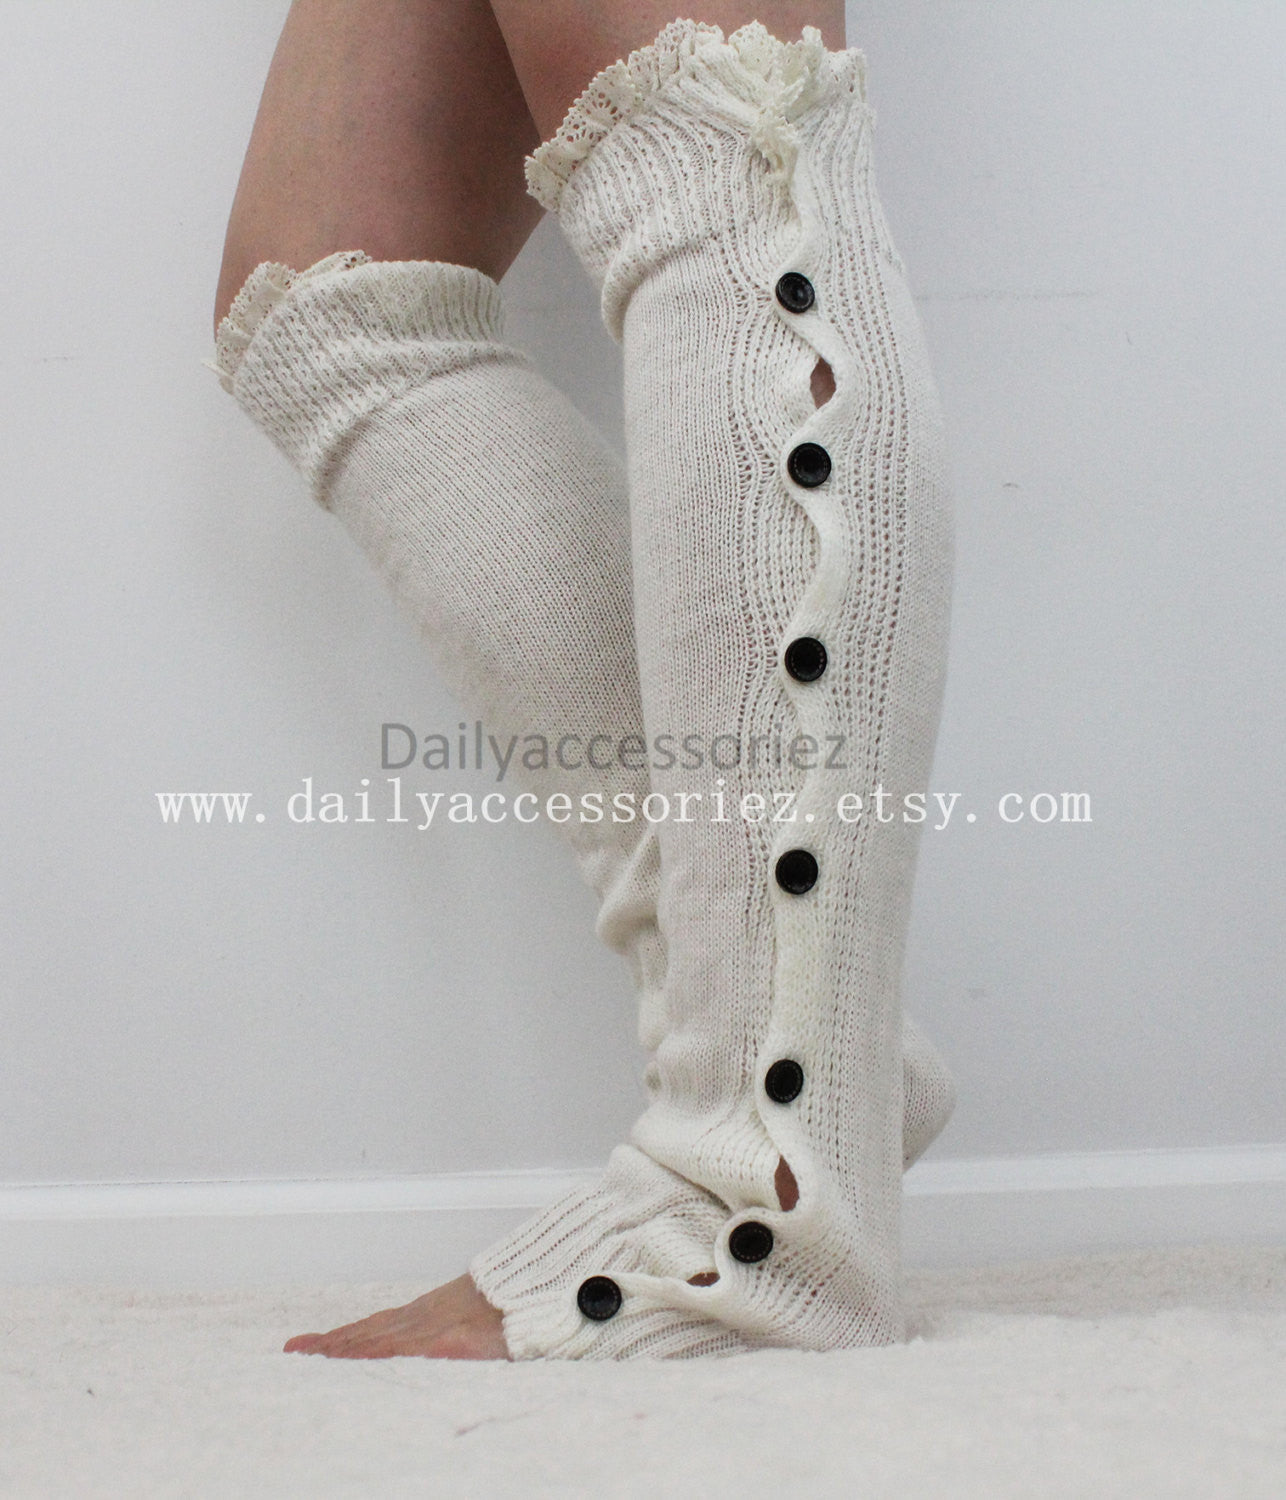 lace womens leg warmers - Bean Concept - Etsy